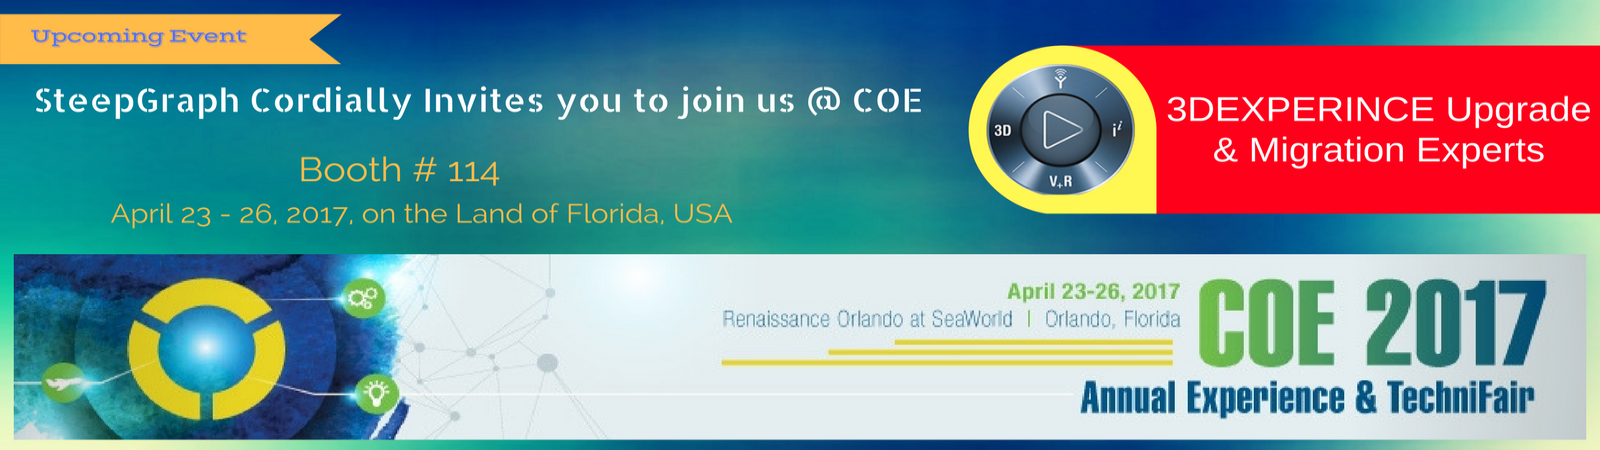 3DEXPERIENCE-Upgrade-Migration-Experts-4